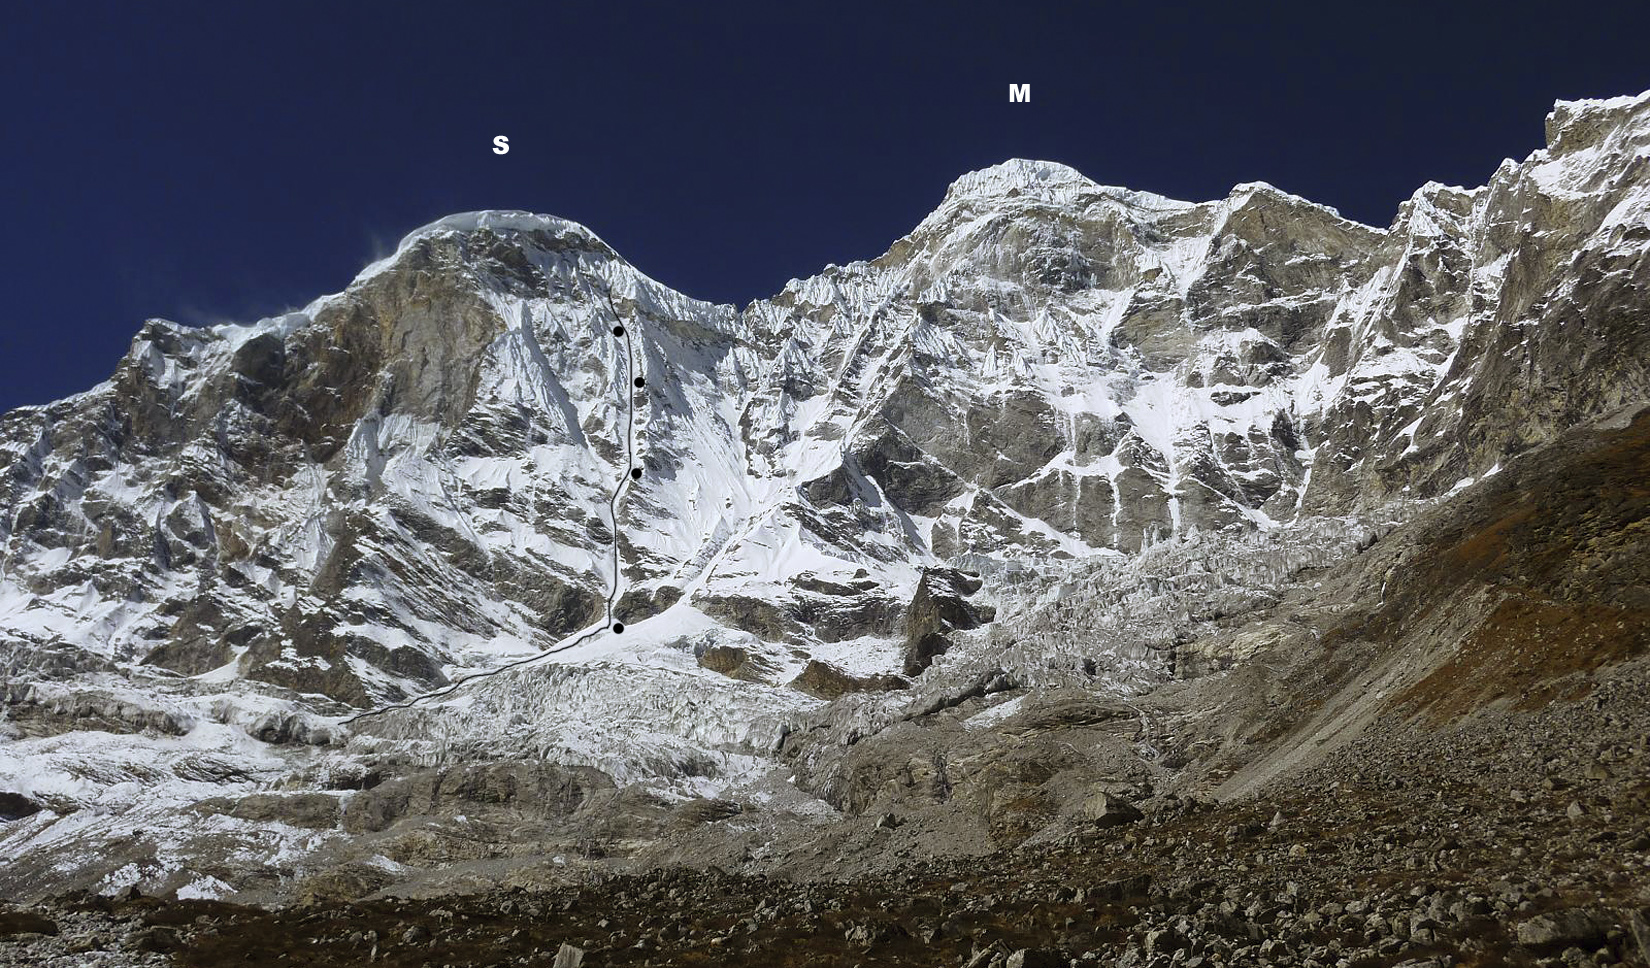 Gaurishankar from east. (S) South summit. (M) Main summit. Attempted route and bivouac sites marked. Ascents of south summit have finished up left skyline. Northeast rib leading to northeast ridge forms right skyline. Japanese planned to attempt east face to left of rib/ridge, directly below main summit.